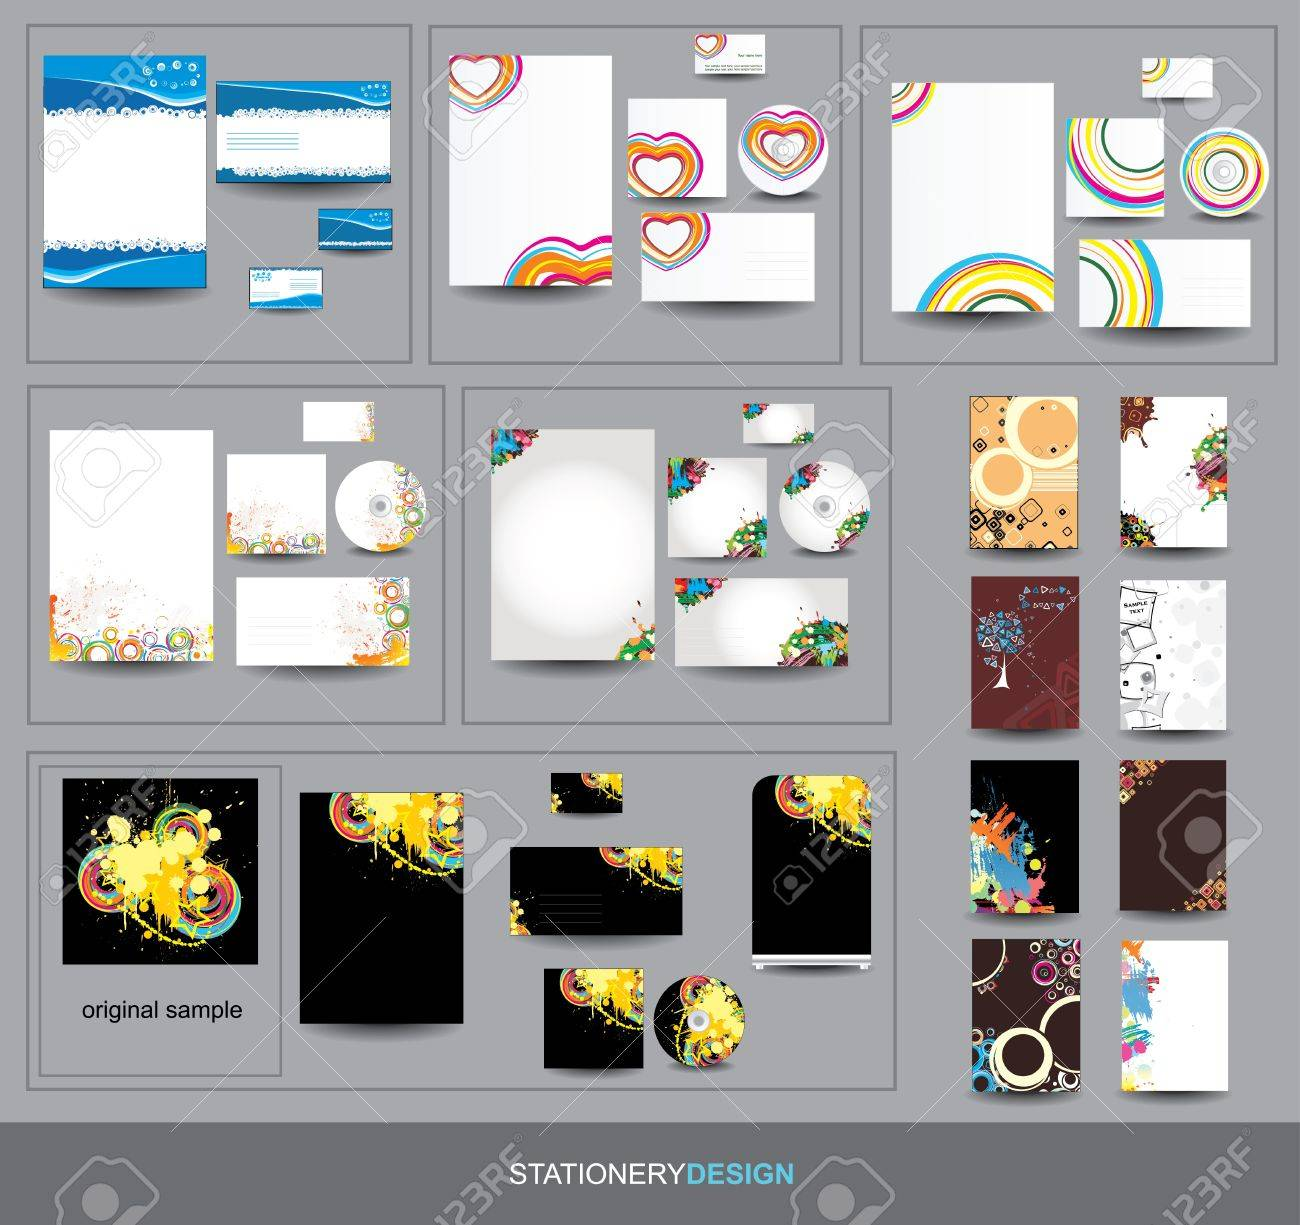 Collection Stationery design Stock Vector - 16702251